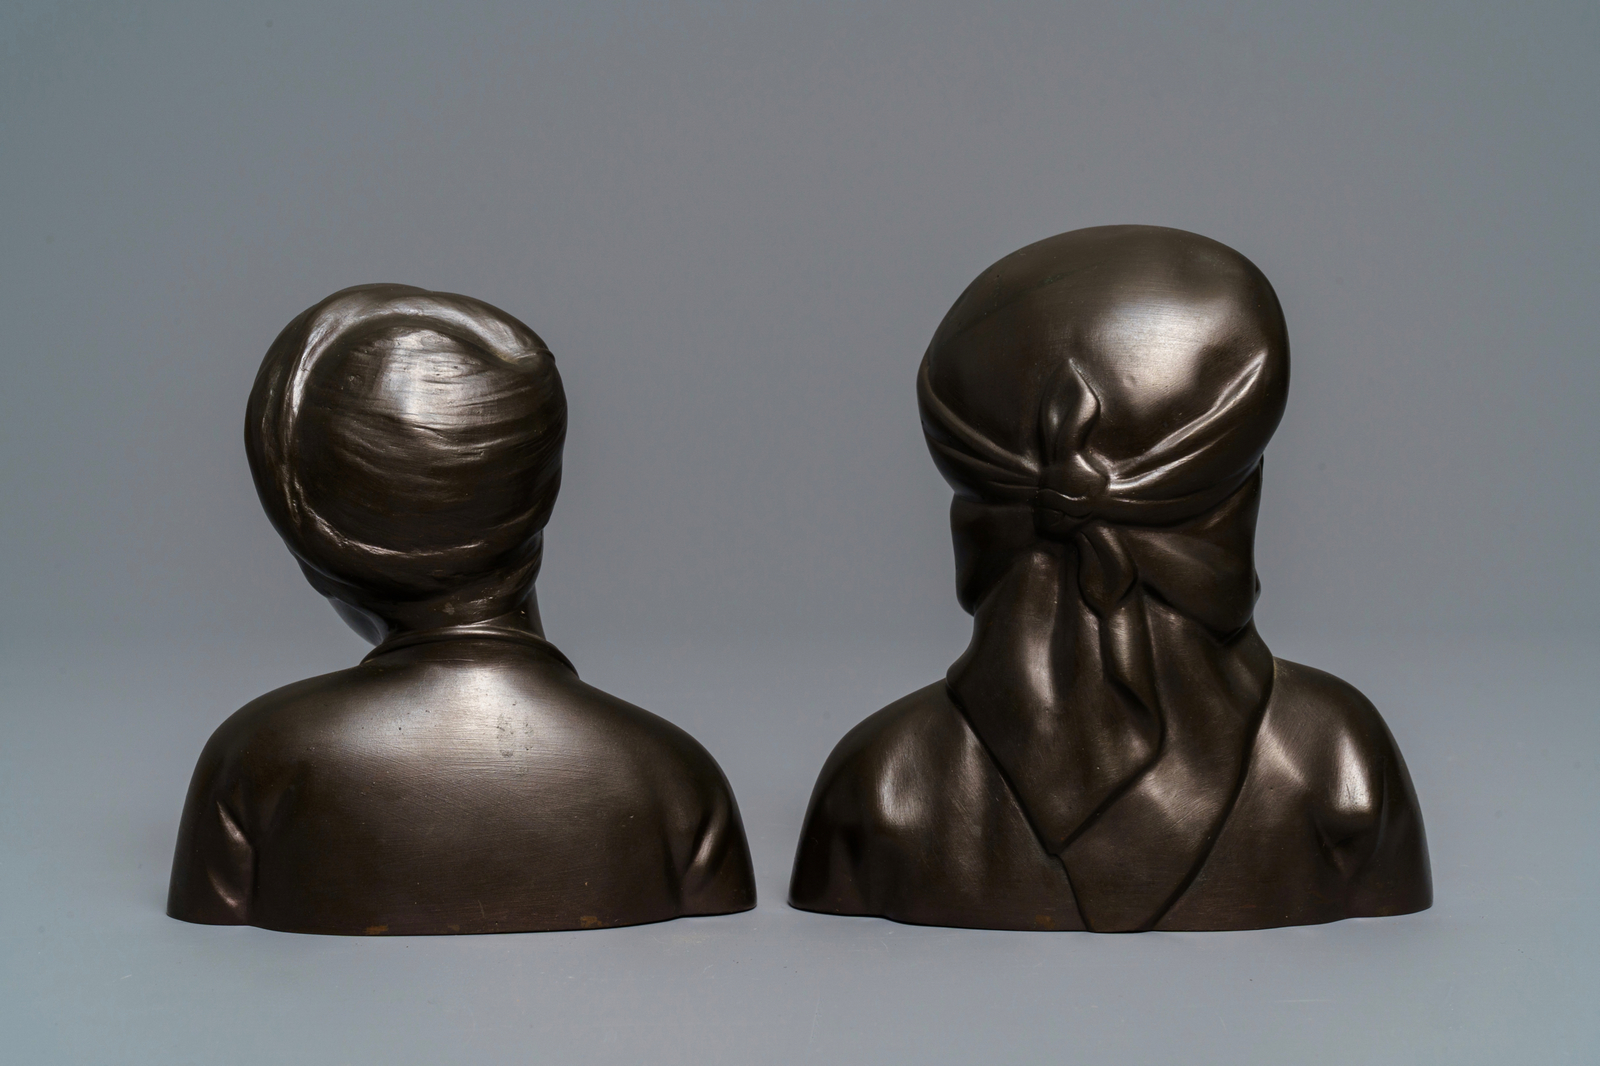 Lot 29 - A pair of Chinese bronze 'Cultural Revolution' busts, 3rd quarter of the 20th C.